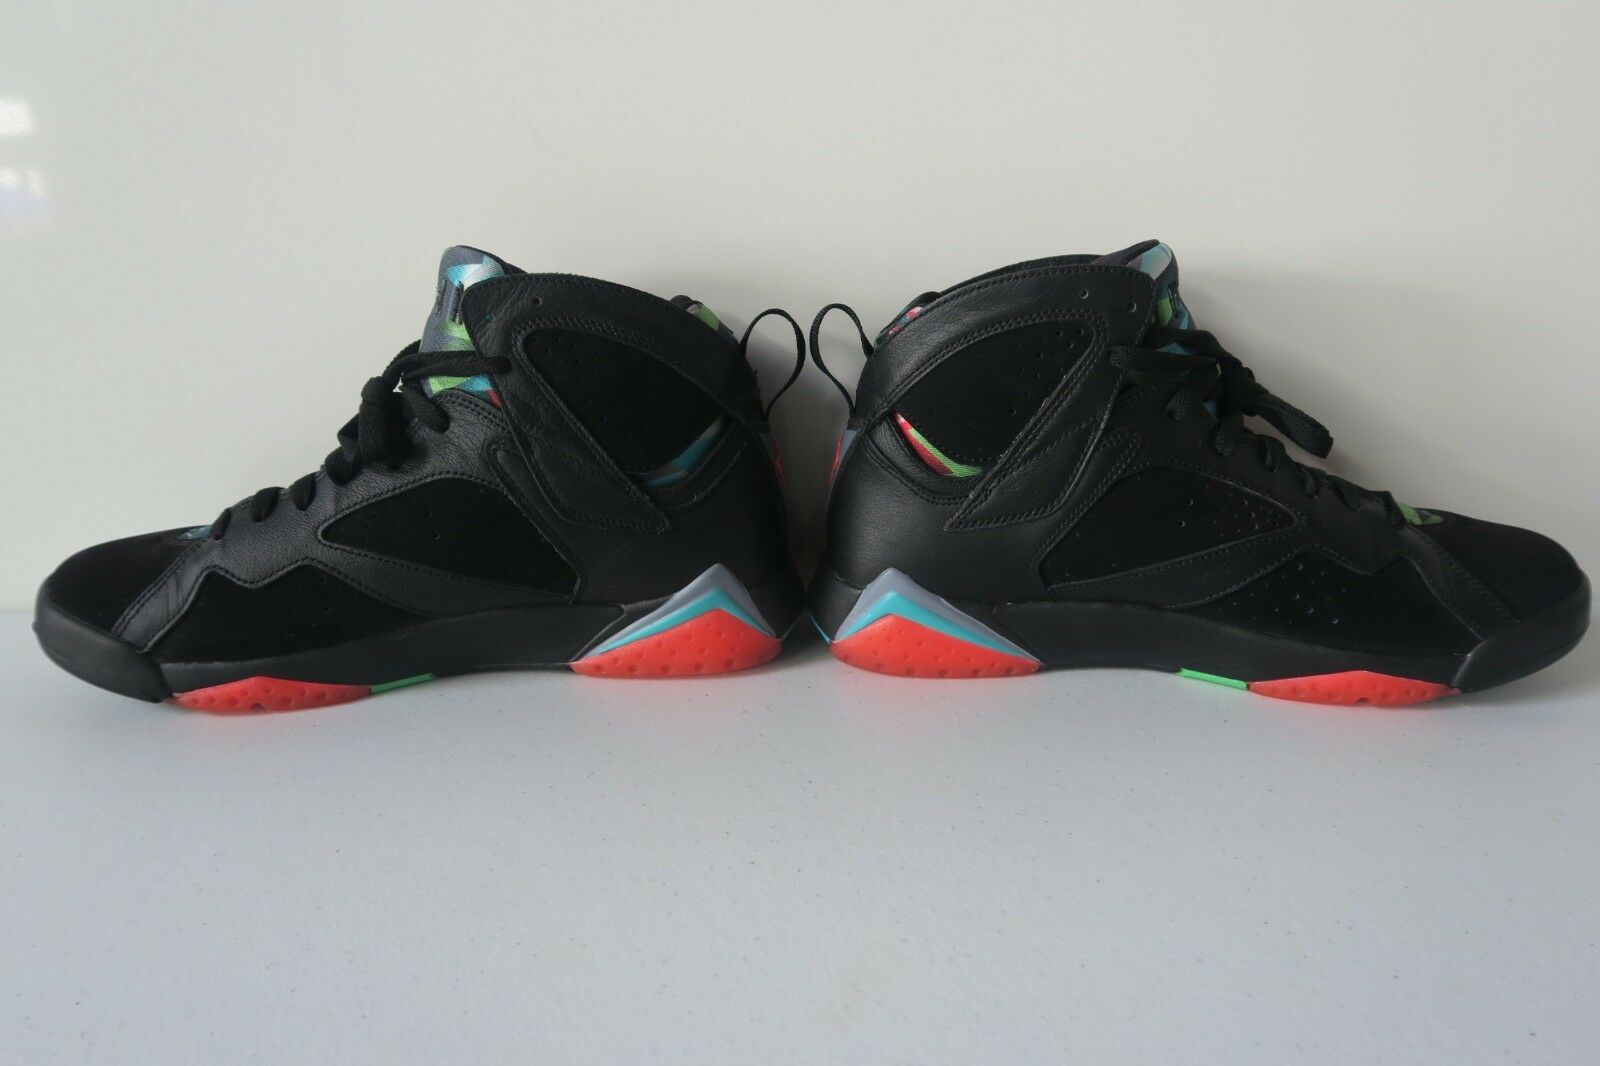 Air Jordan 7 Retro 30th Anniversary- Anniversary- Anniversary- Barcelona Nights Size 10.5 d94751